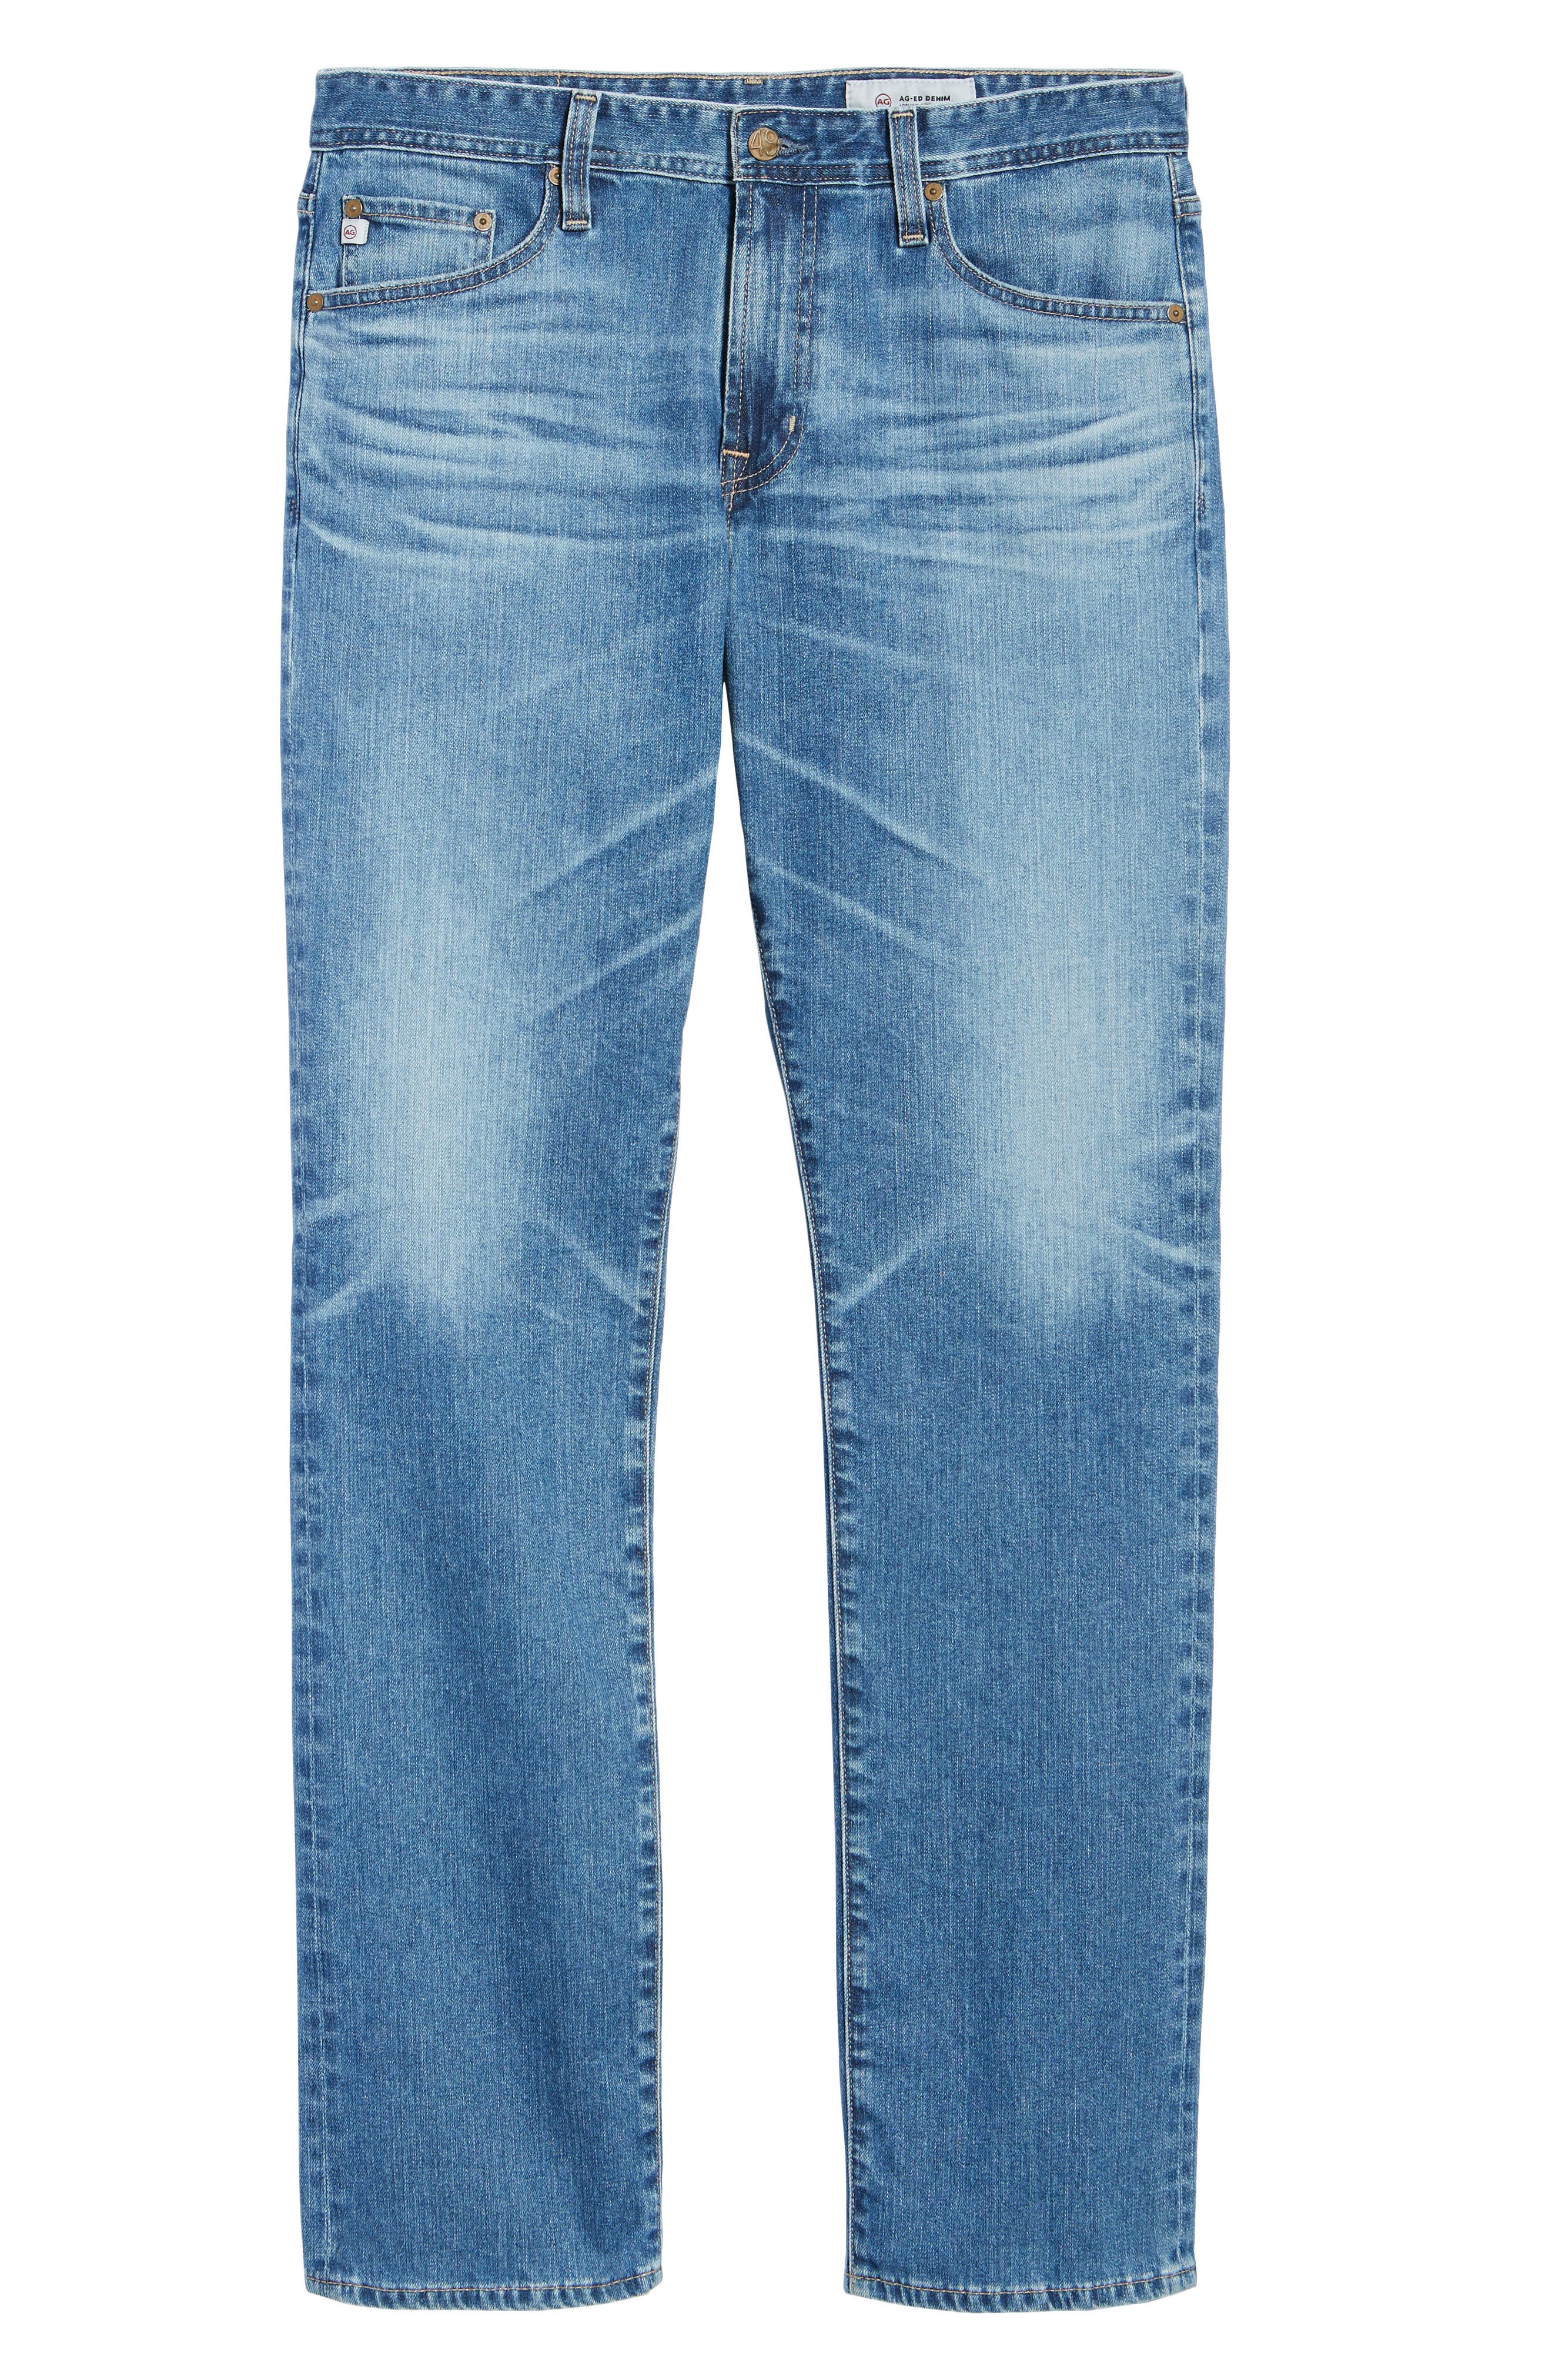 Everett Slim Straight Leg Jeans,                             Alternate thumbnail 6, color,                             15 YEARS OPEN ROAD